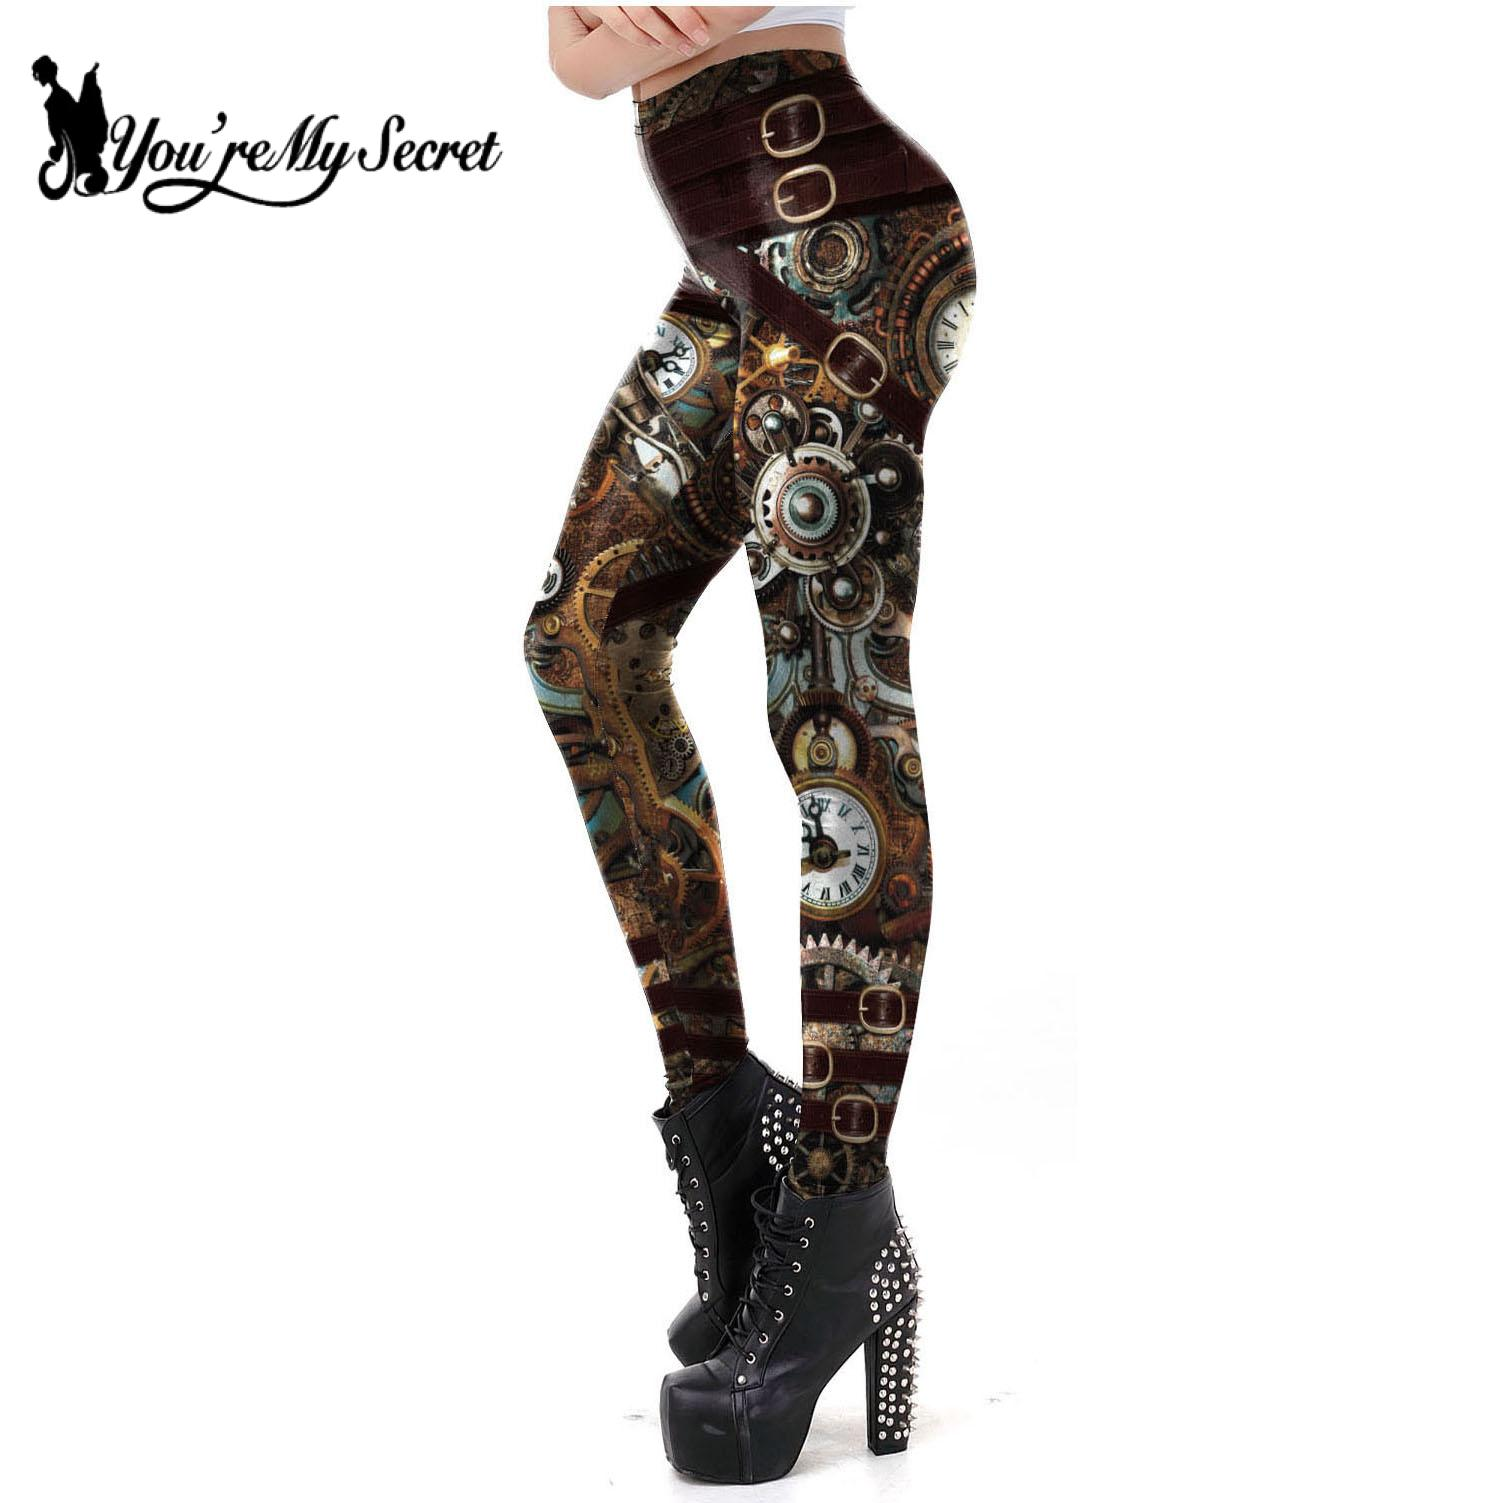 [You're My Secret] Vintage Mechanical Gear Women Leggings Workout Pants 3D Printed Steampunk Slim Leggins Fitness Sexy Legins